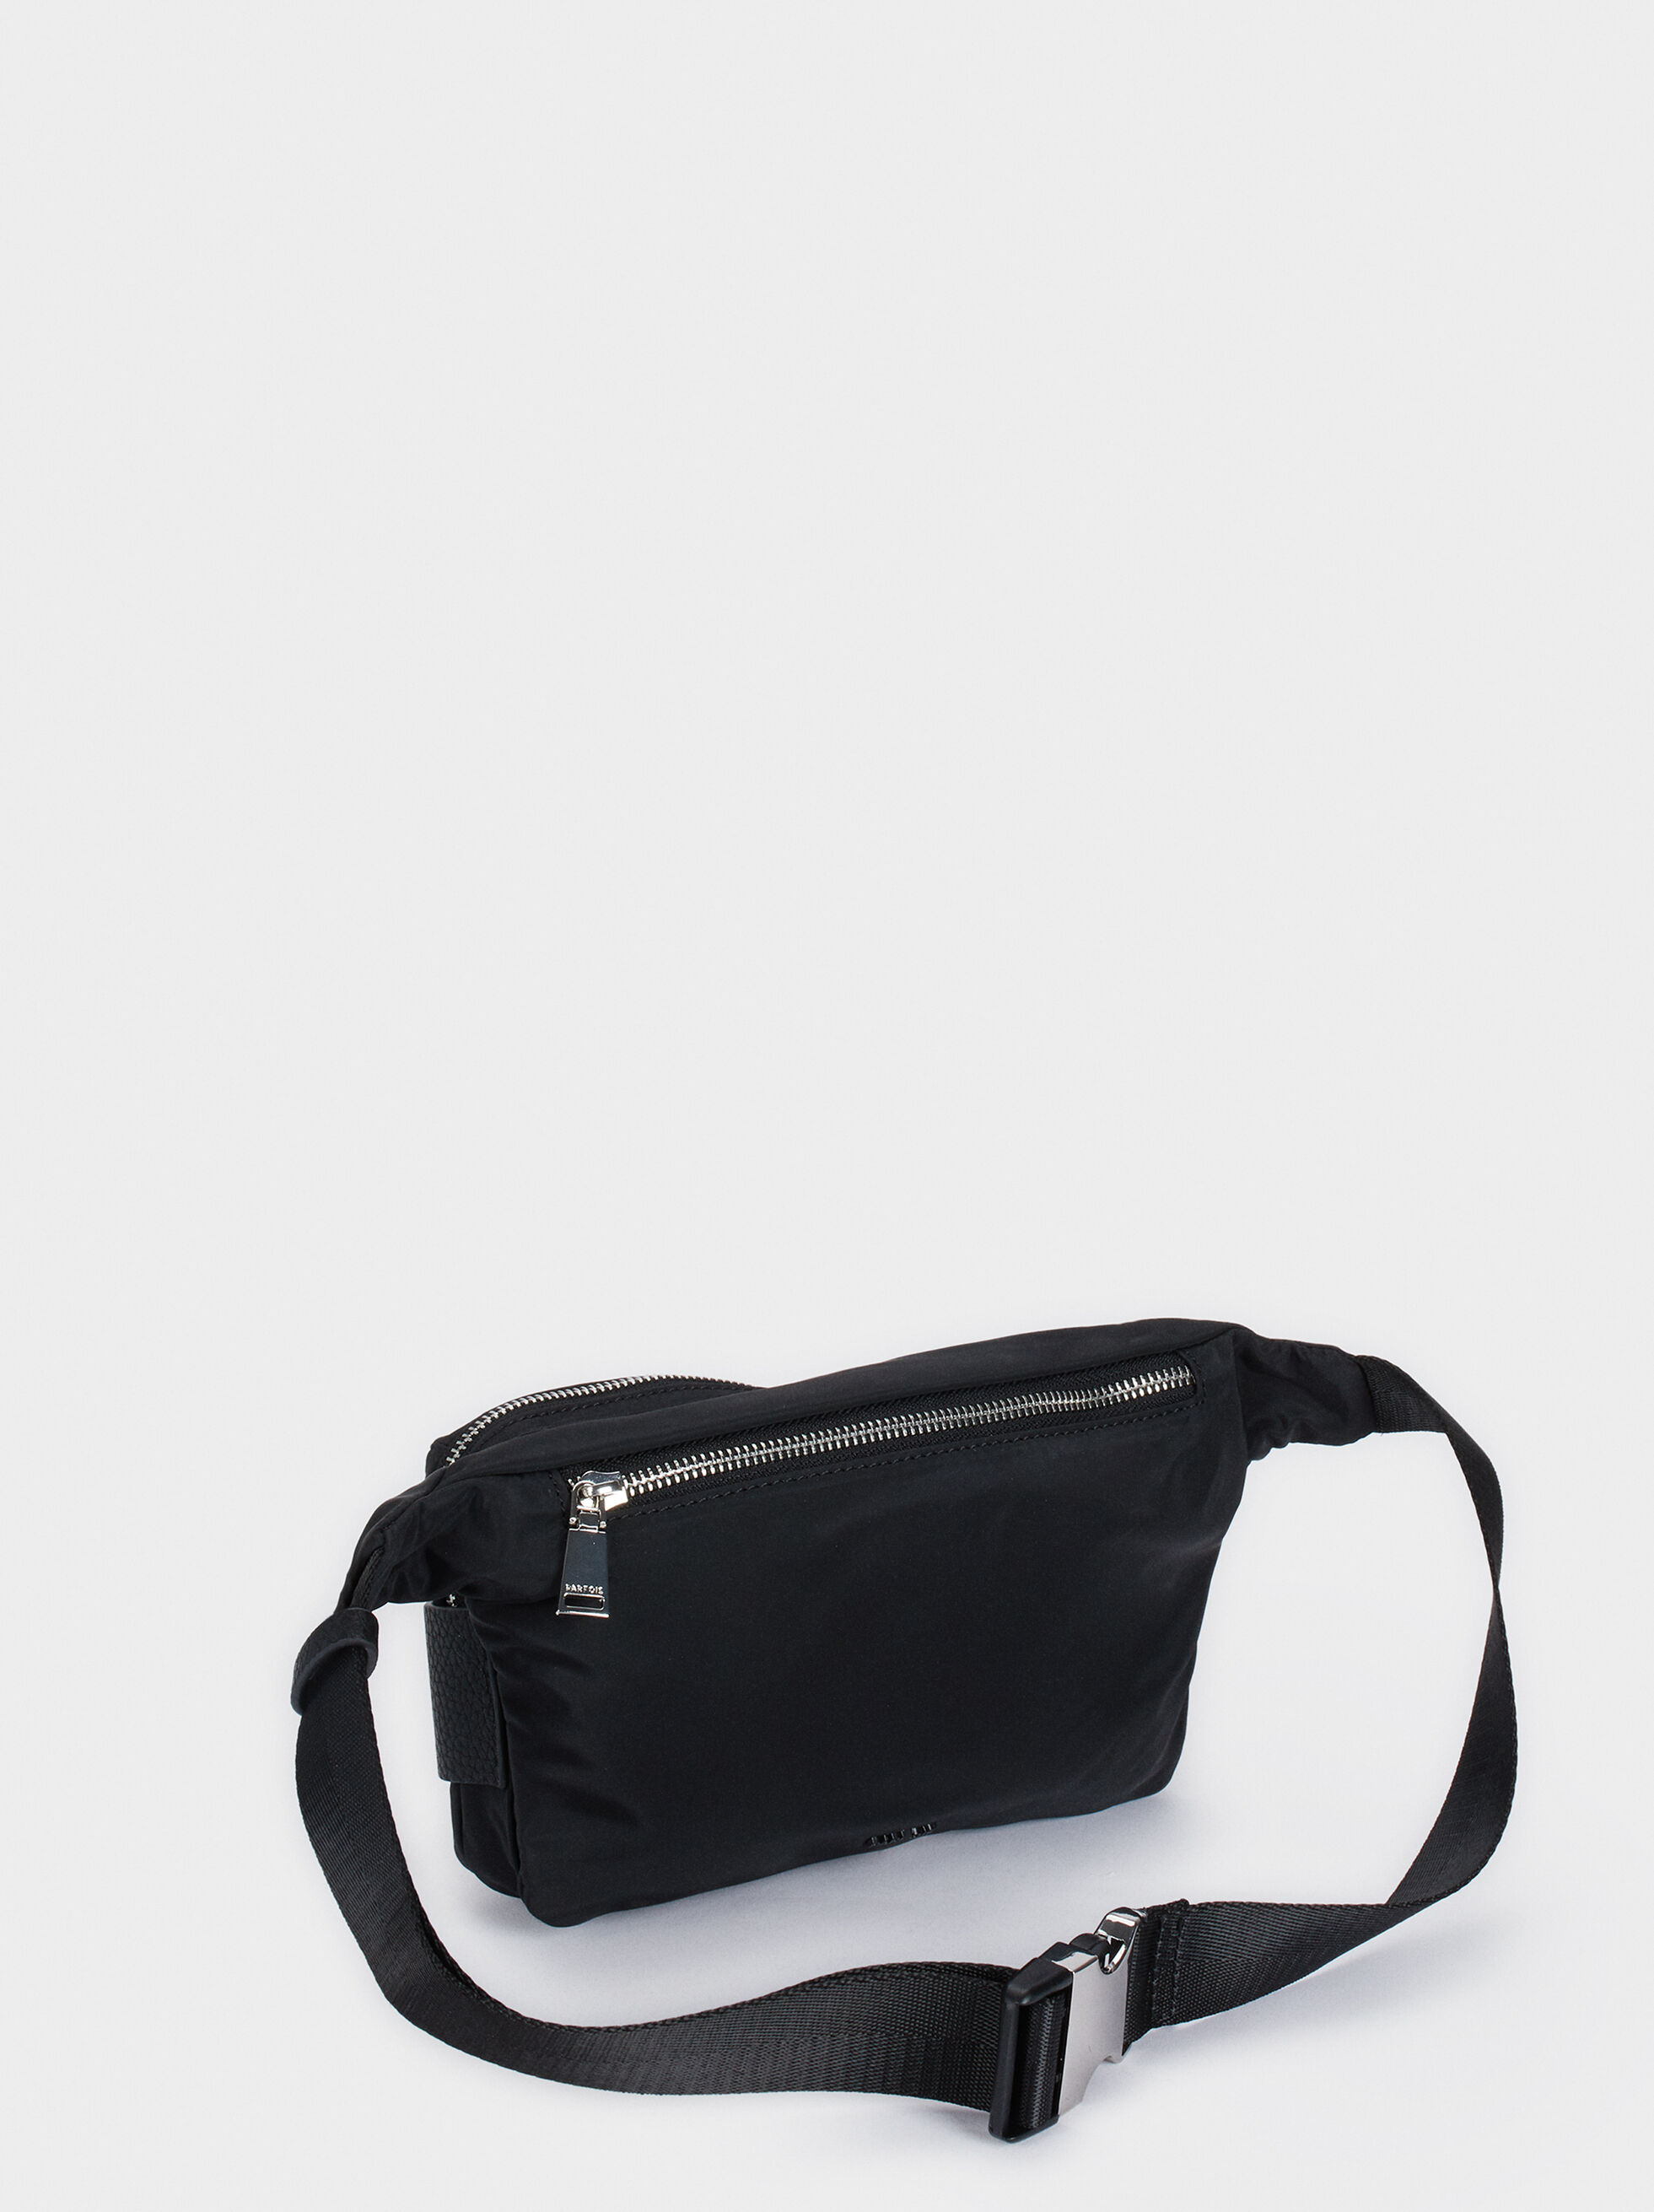 Nylon Belt Bag, Black, hi-res